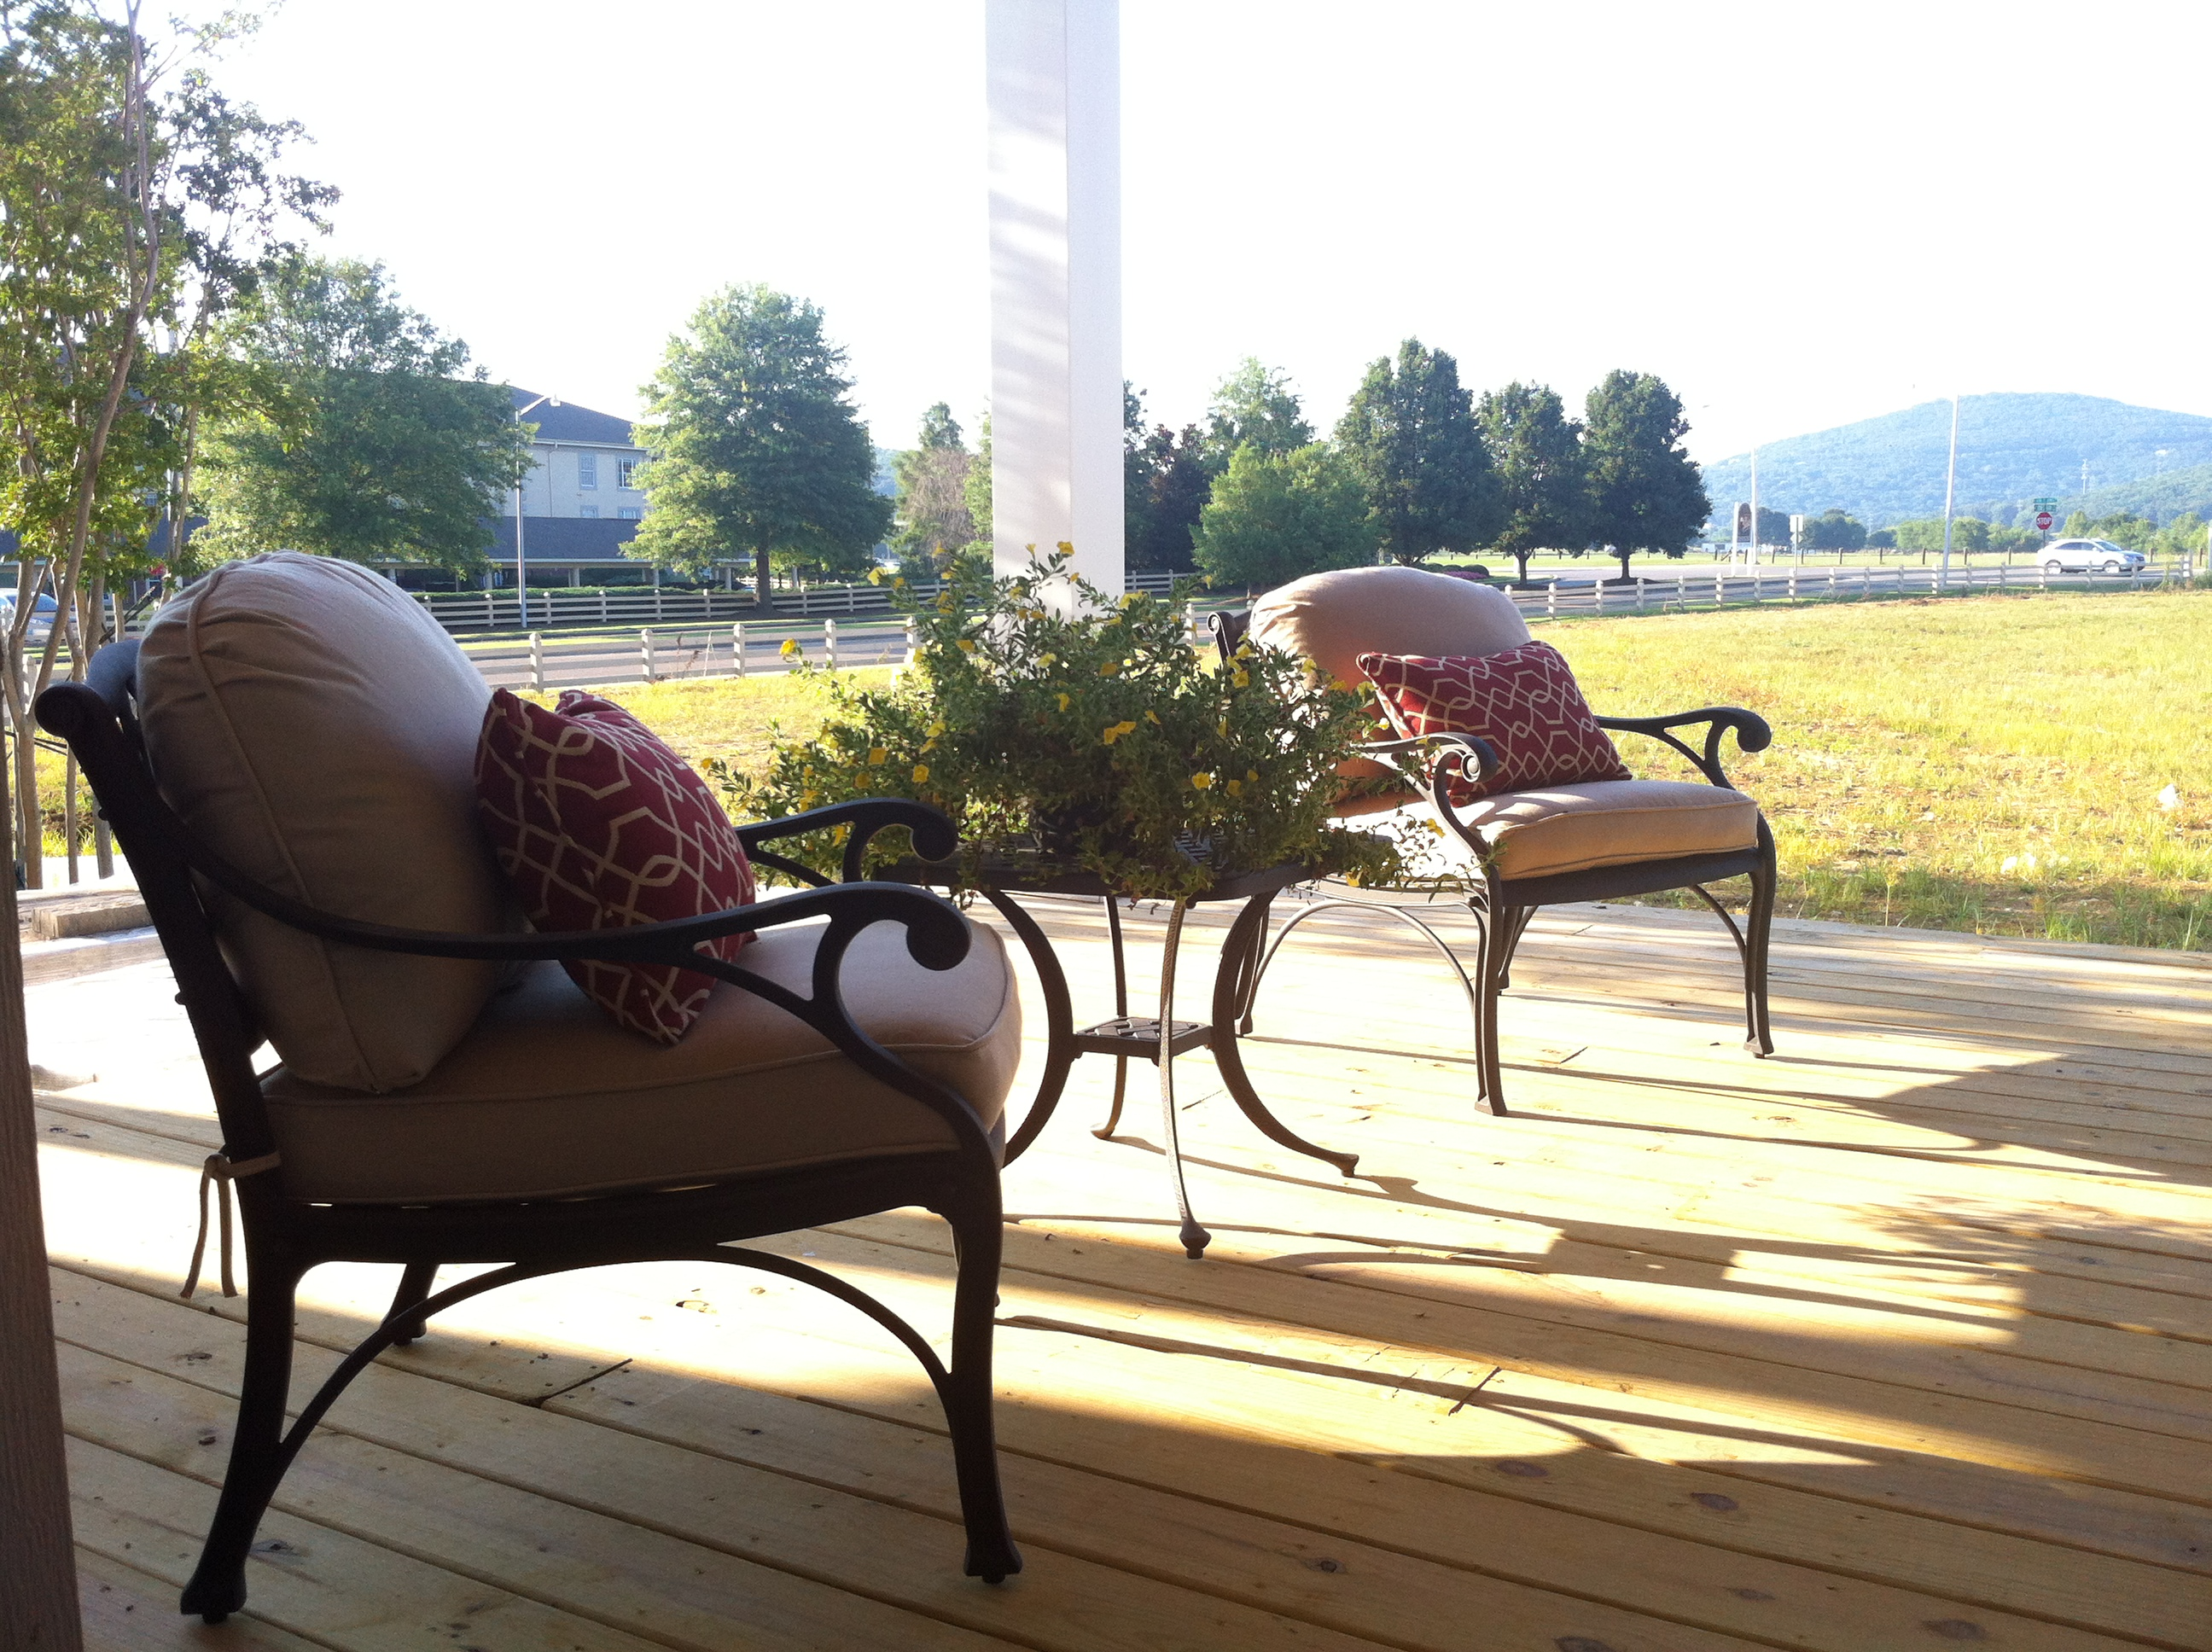 There's a chair on our Welcome Center's Front Porch just waiting for YOU!